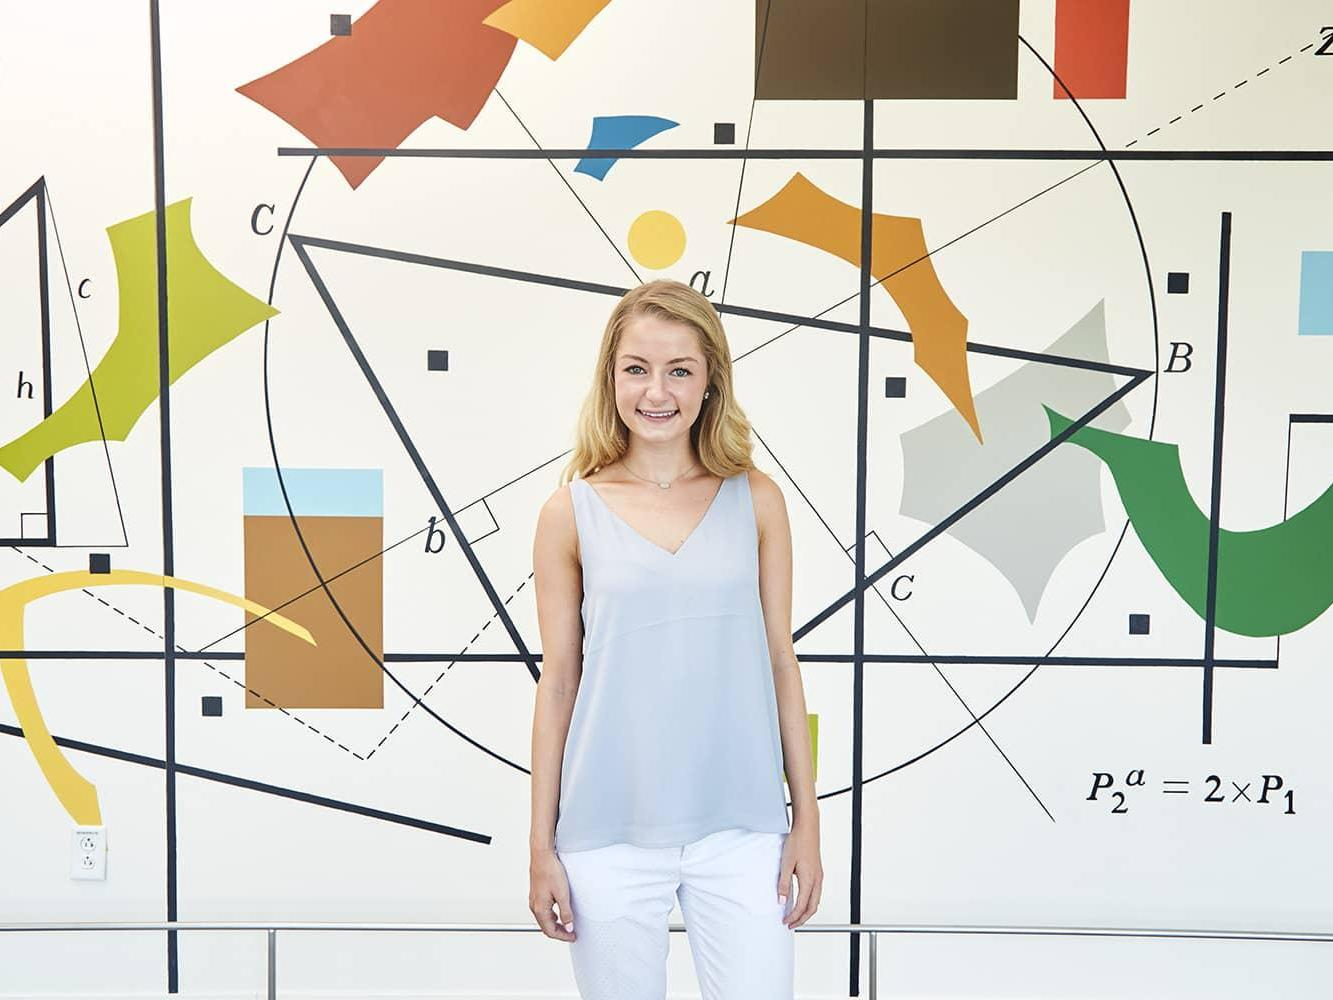 SAS intern Kate standing in front of a colorful background